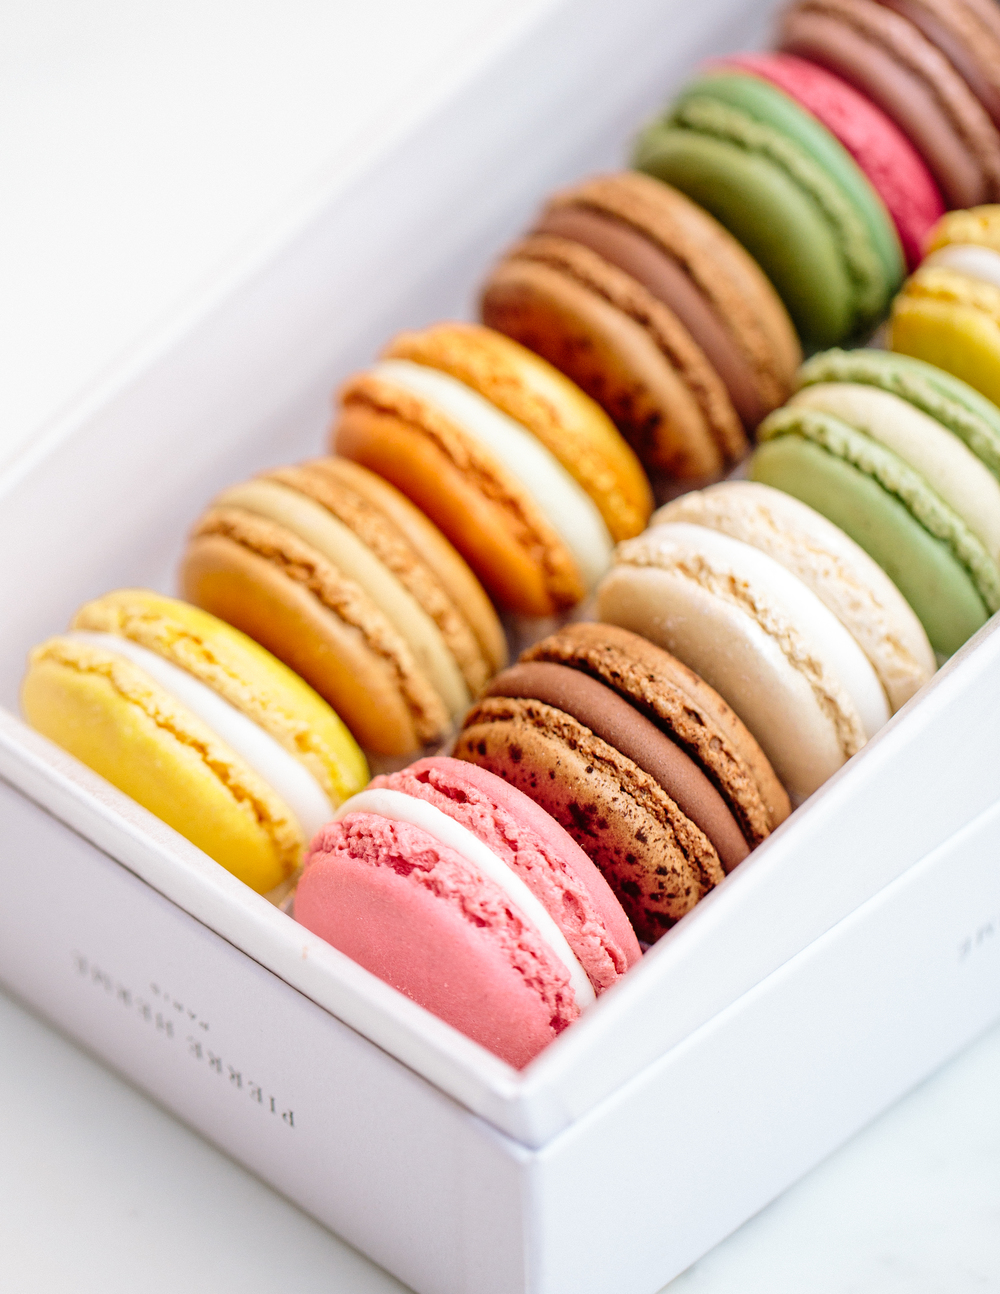 PIERRE HERMÉ various locations INSIDER TIP | Whether you stack them or line them up like jewels, Pierre Herme's macarons are otherworldy in any form. His classic flavors are among the bestsellers -- chocolate, salted caramel, vanilla, etc. - but he is known for incorporating exotic flavors, even those of the savory variety, into his limited edition collections. Be adventurous and try them all!